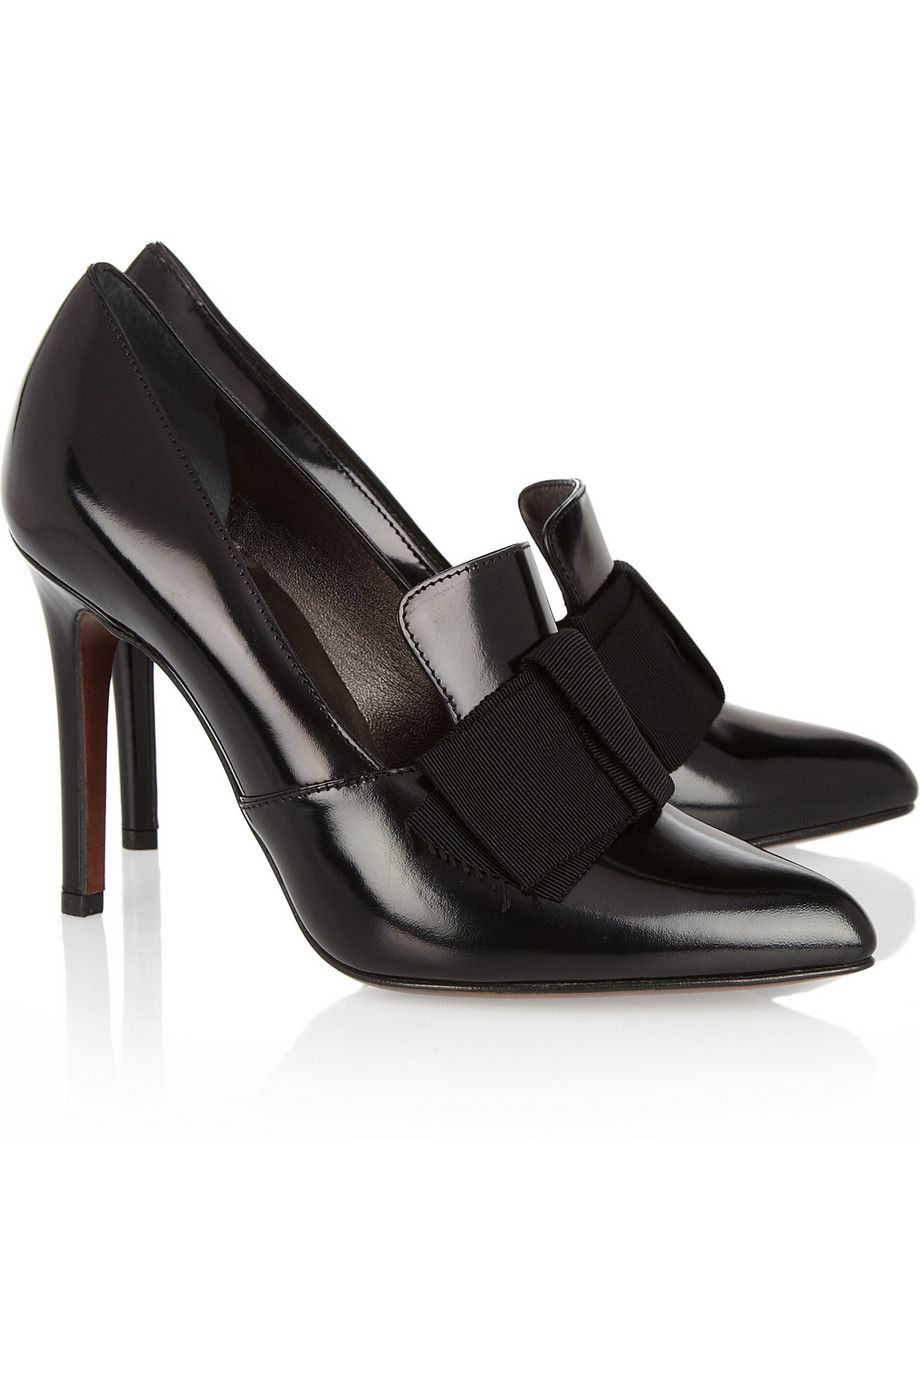 Lanvin|Glossed black leather loafer-style pumpes #shoes